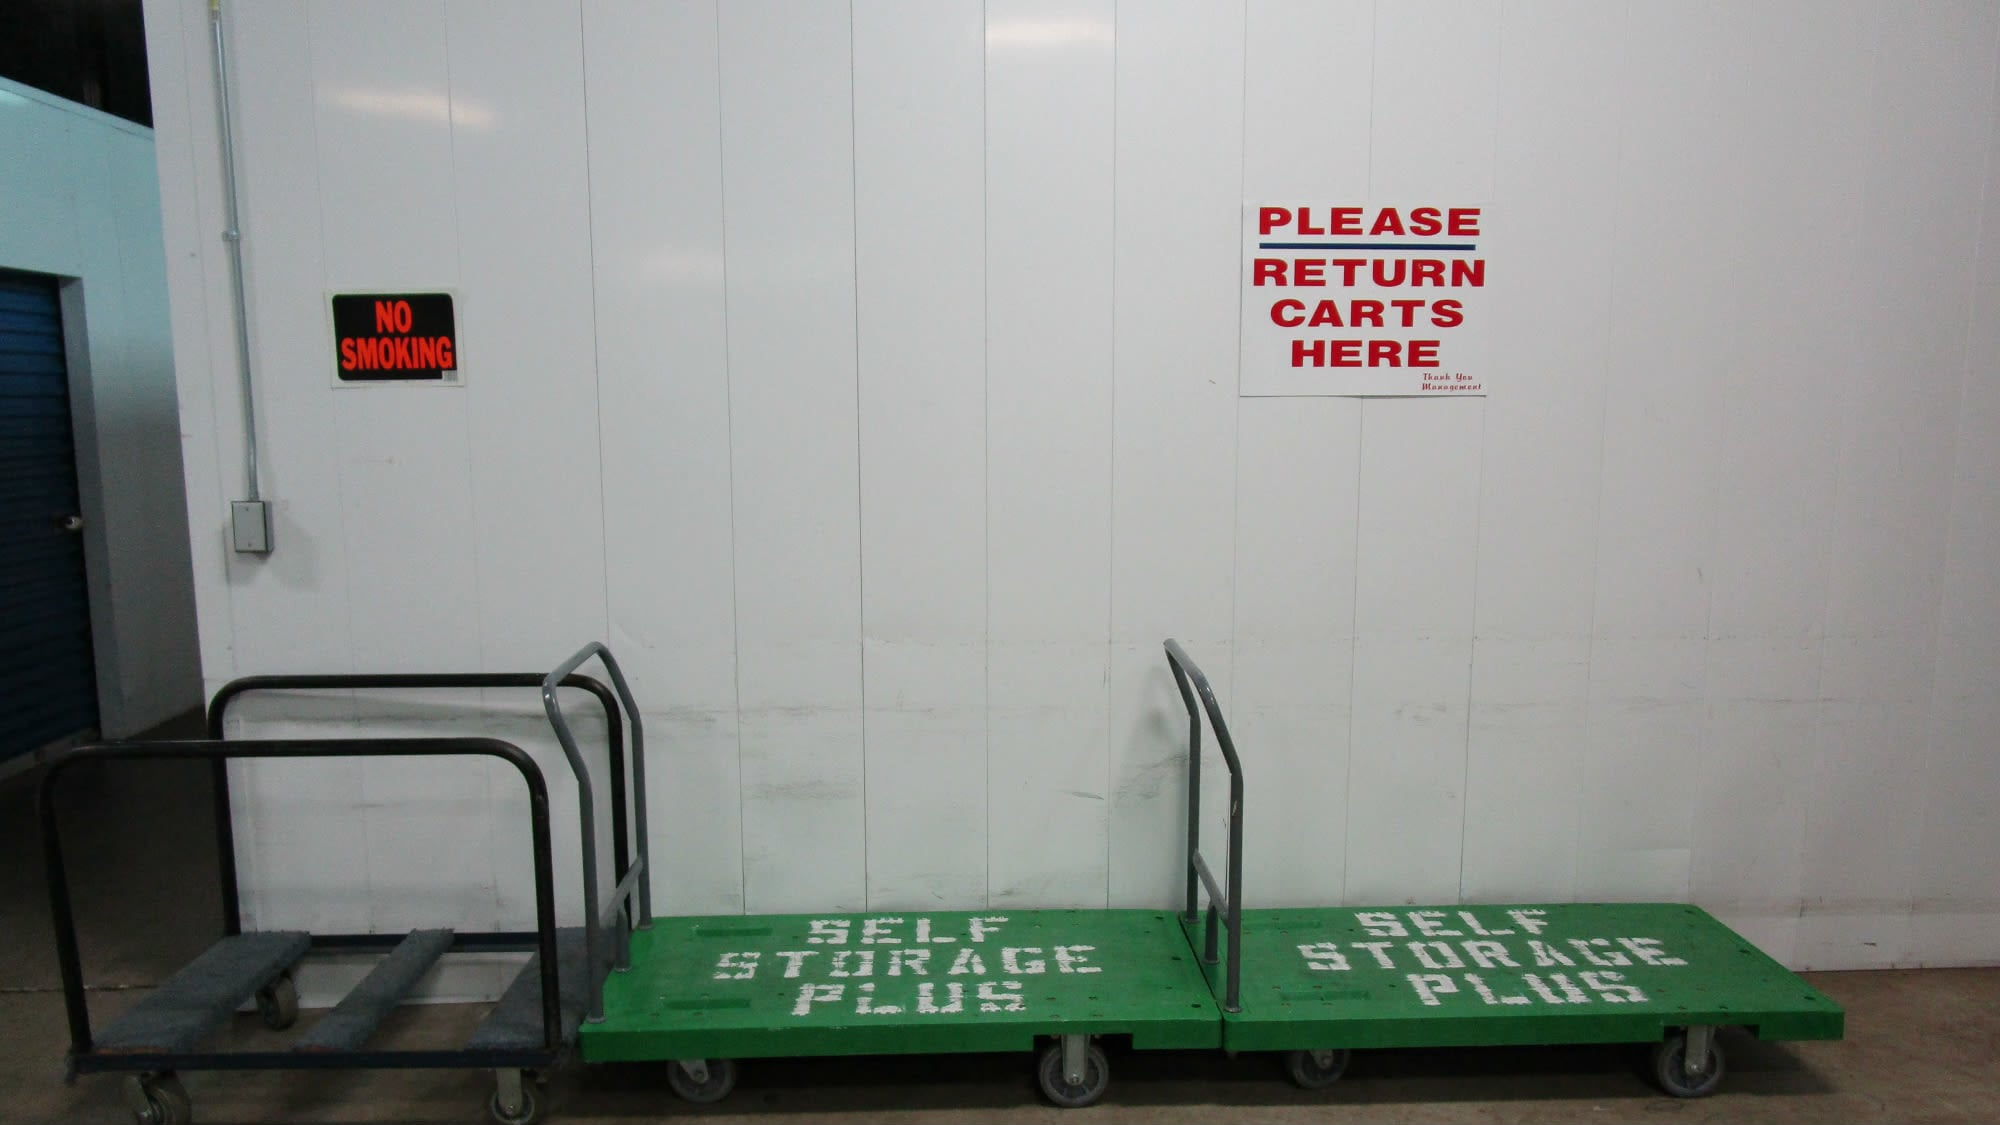 Carts available at Self Storage Plus in Lanham, MD